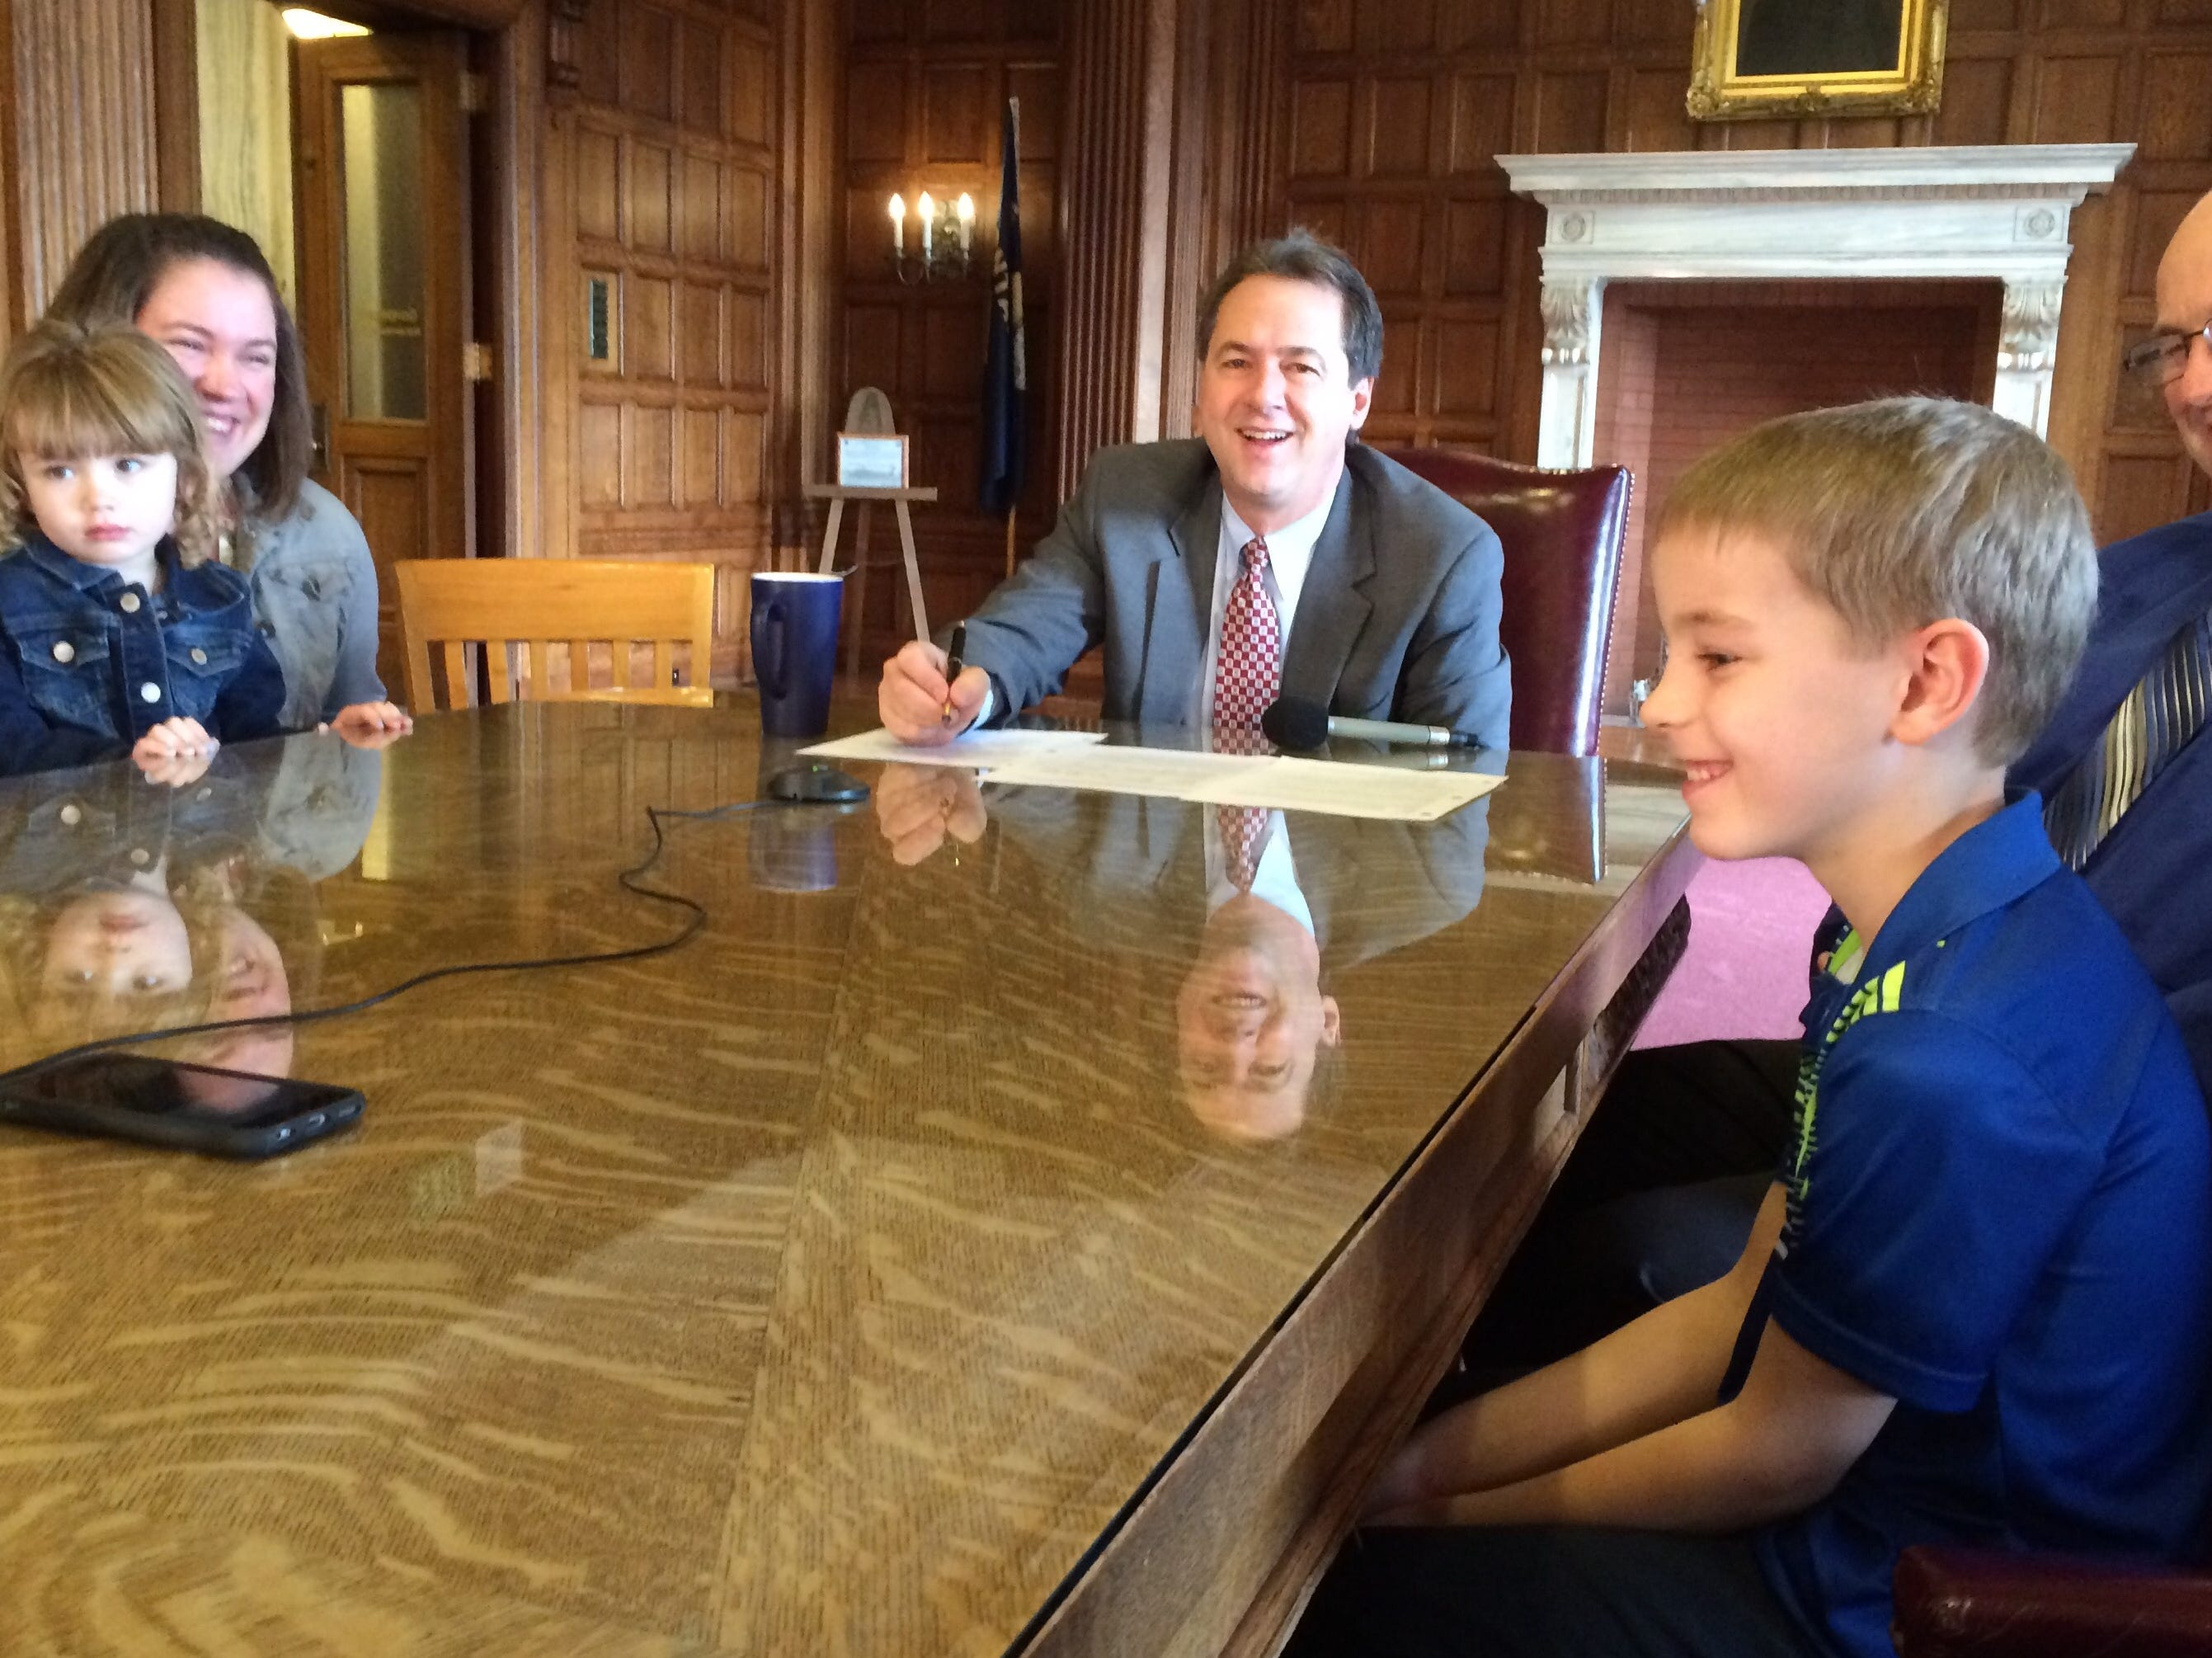 Tribune photo/Phil Drake Luke Kelley (right), 8, smiles Monday as he hears the voice of his mother, Master Sgt. Heather Kelley, coming from the speakerphone. Looking on (from left) are Brooklyn Keighley, 3, and mom Jalyn; Gov. Steve Bullock and Luke?s dad, Randy.